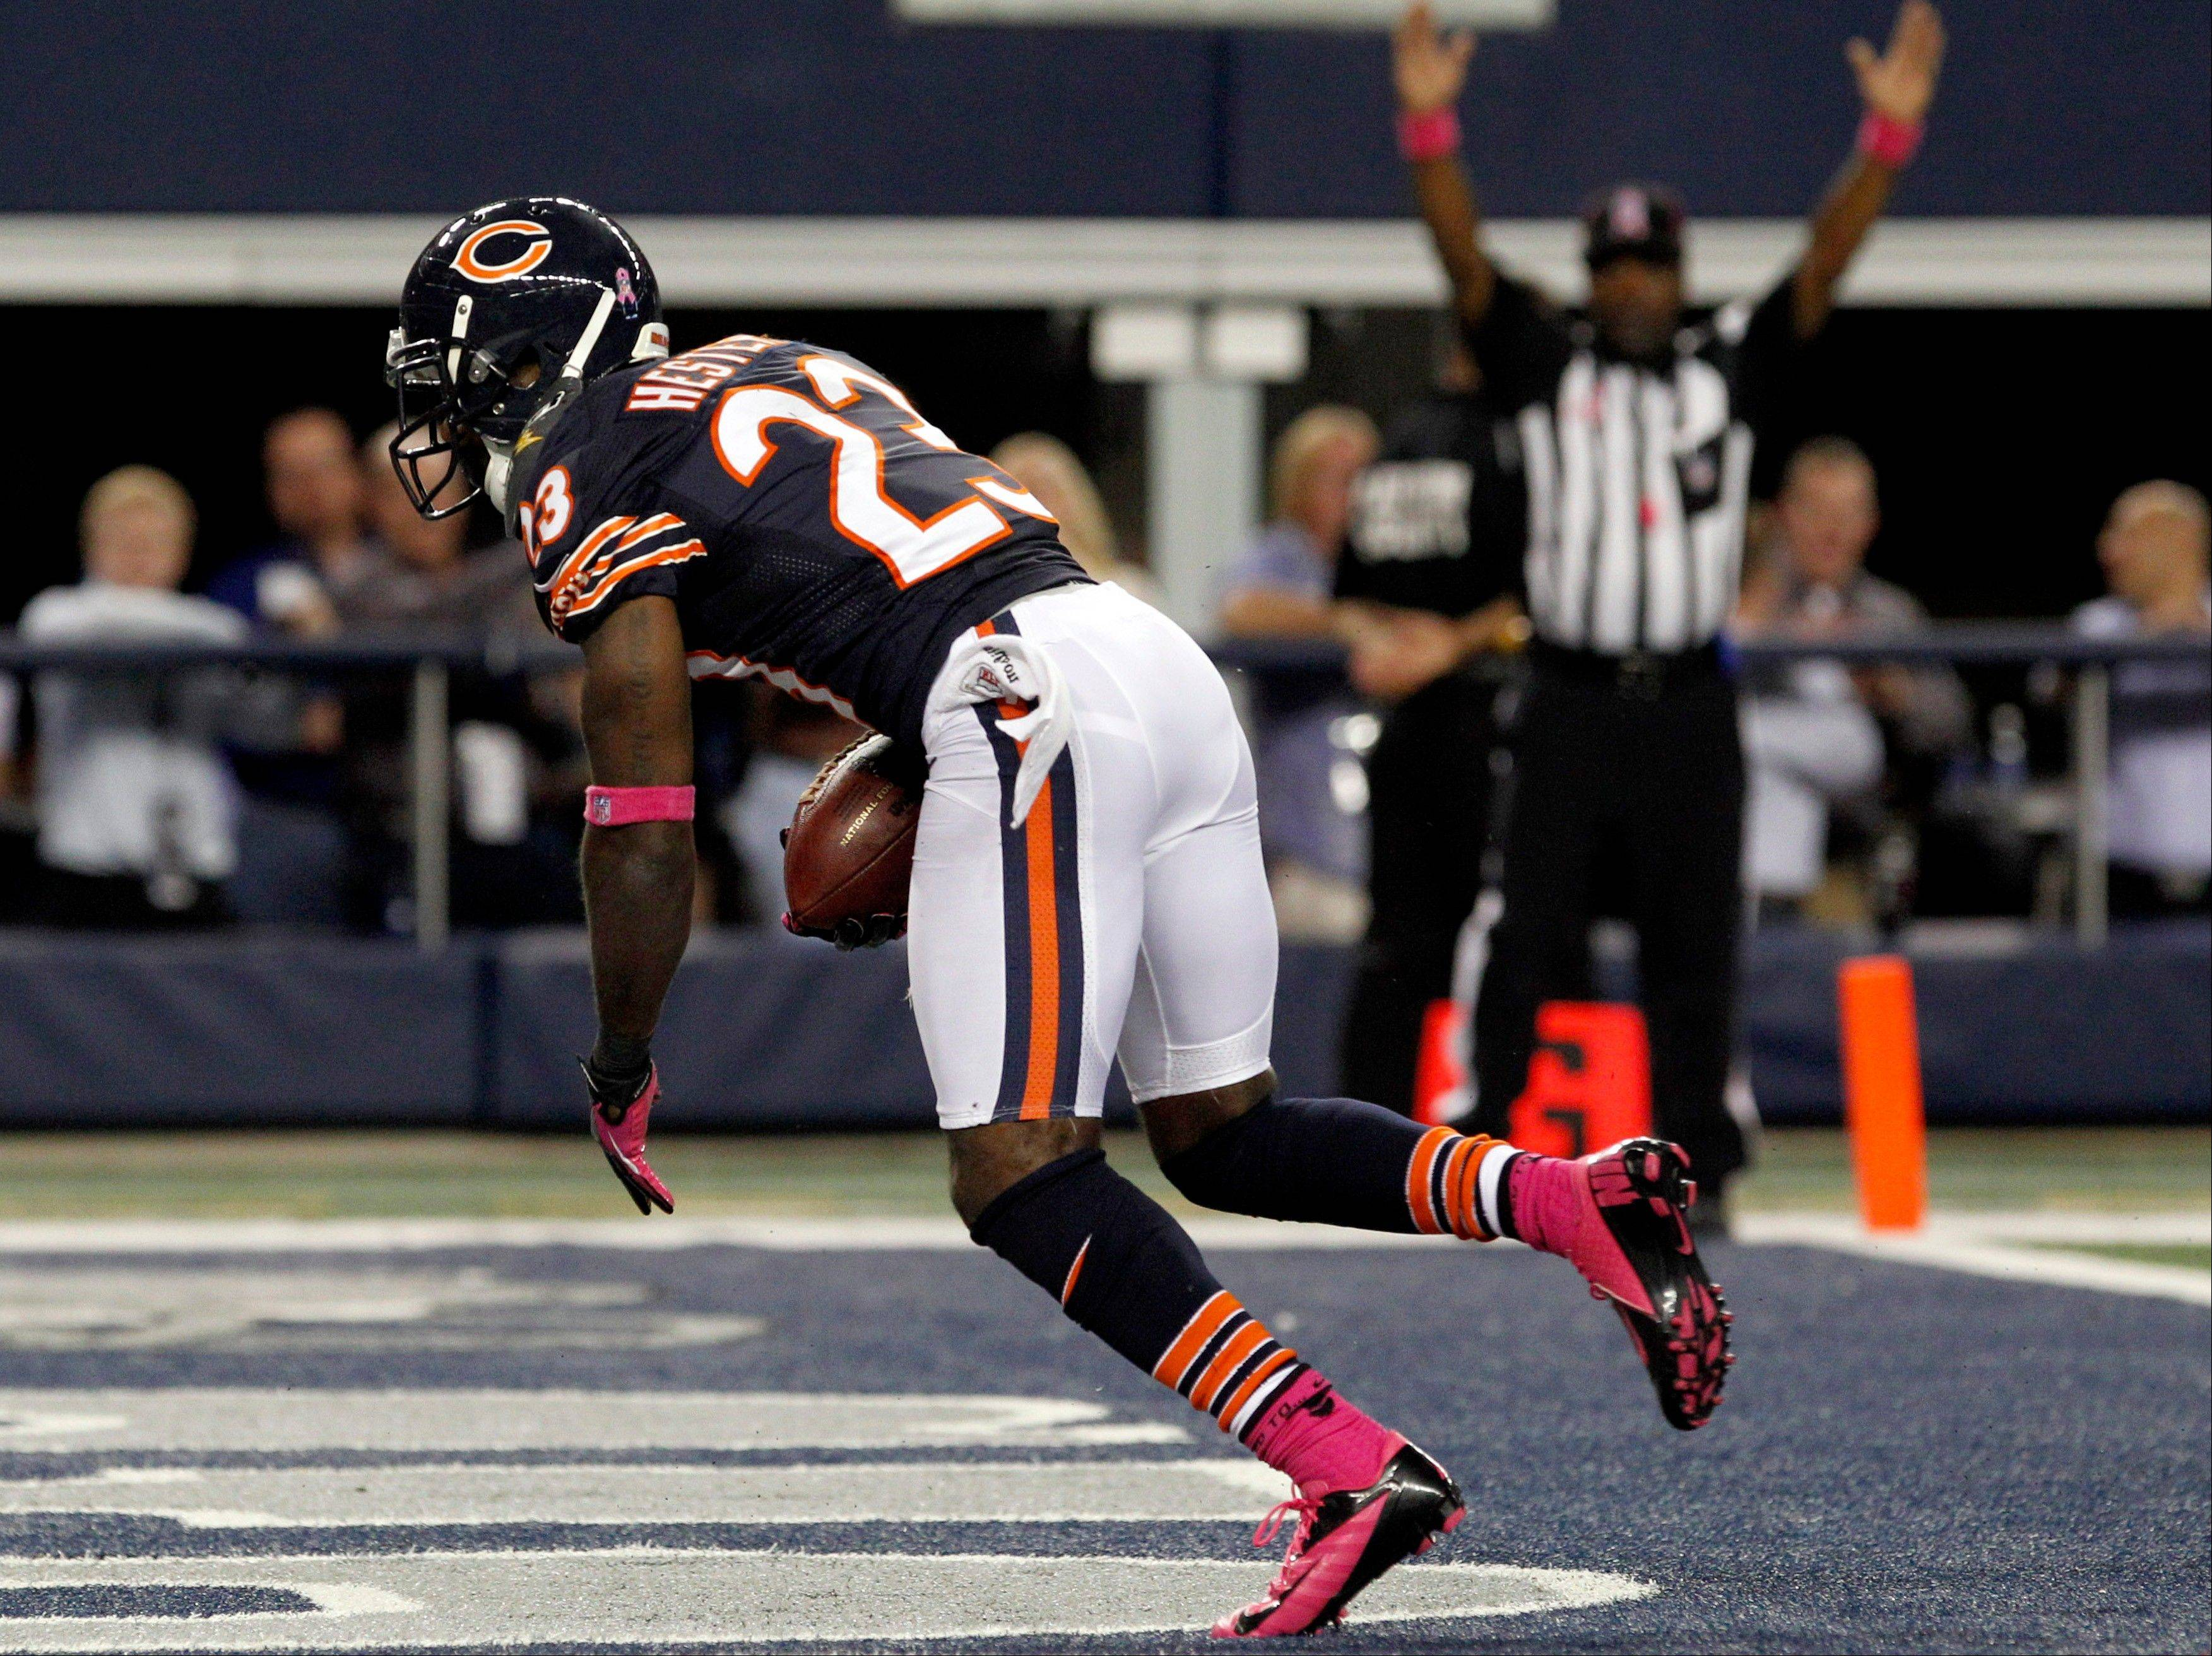 Chicago Bears wide receiver Devin Hester makes a touchdown reception against the Dallas Cowboys during the second half.